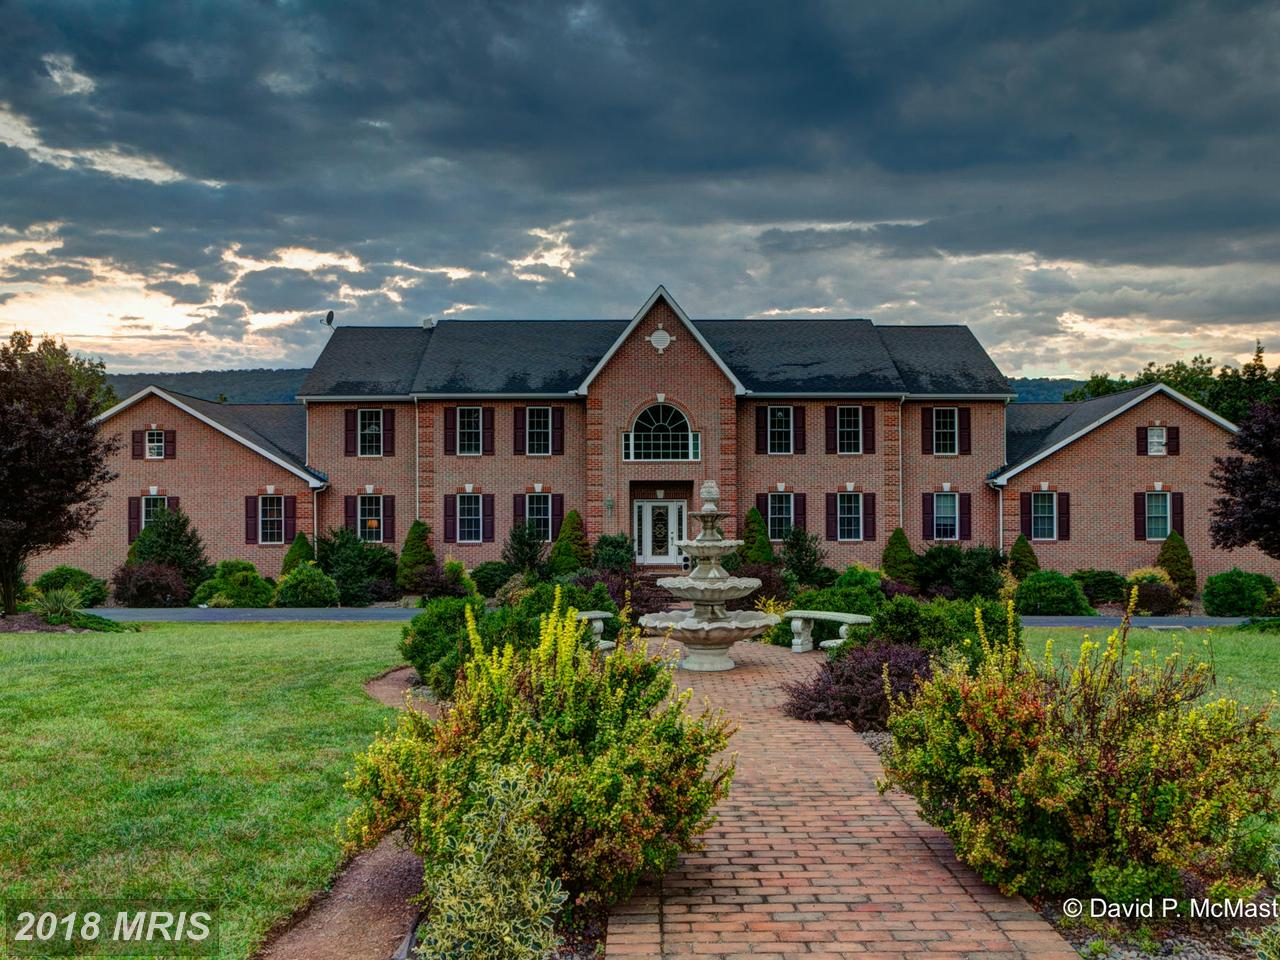 Residential Properties For Sale In Hedgesville Wv